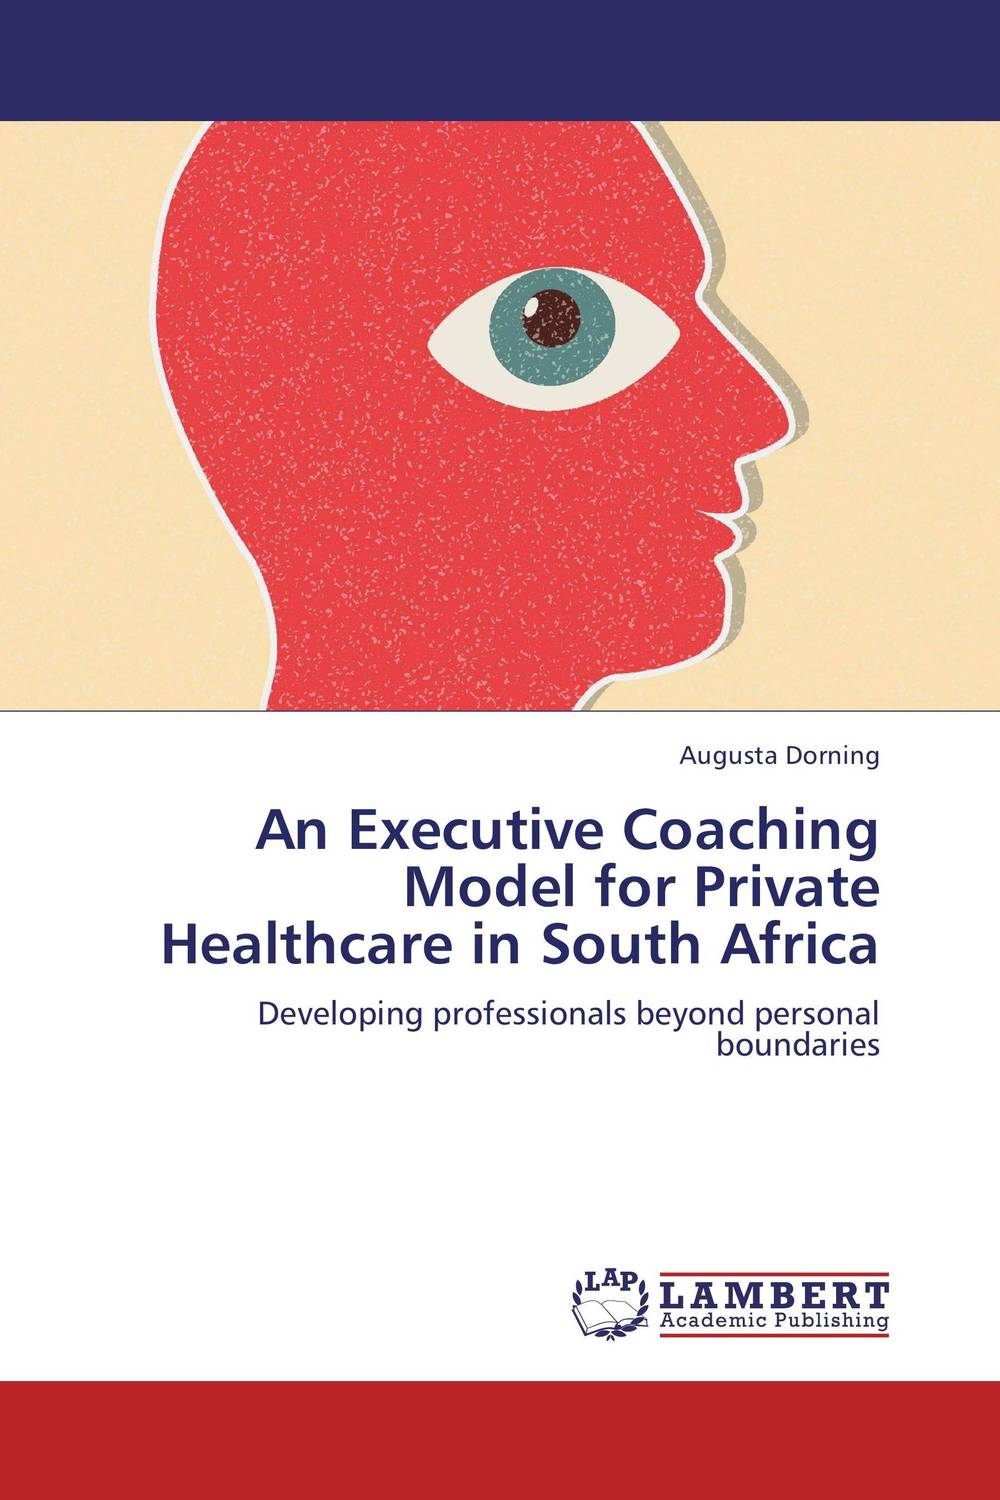 An Executive Coaching Model for Private Healthcare in South Africa further techniques for coaching and mentoring